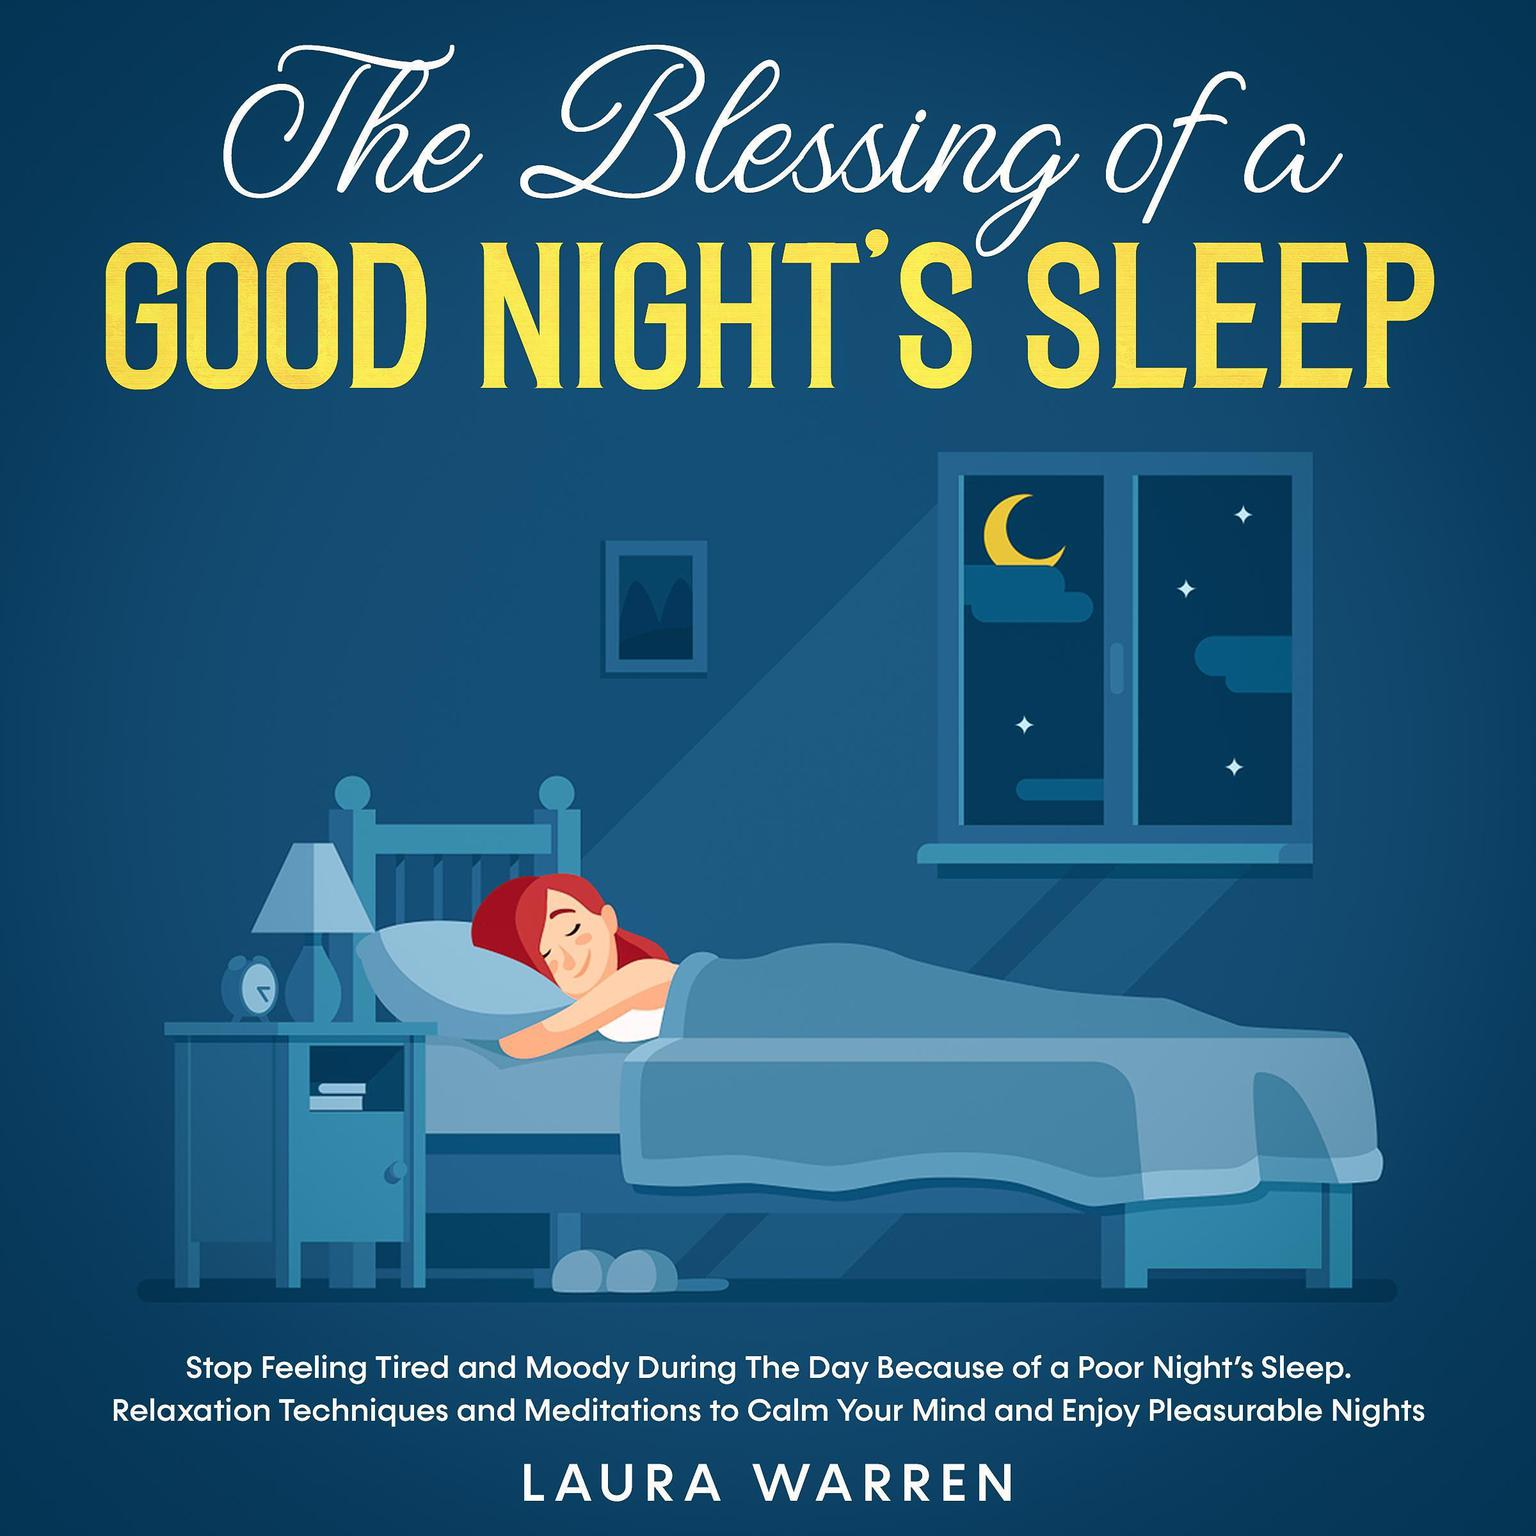 The Blessing of a Good Night's Sleep Stop Feeling Tired and Moody During The Day Because of a Poor Night's Sleep. Relaxation Techniques and Meditations to Calm Your Mind and Enjoy Pleasurable Nights Audiobook, by Laura Warren